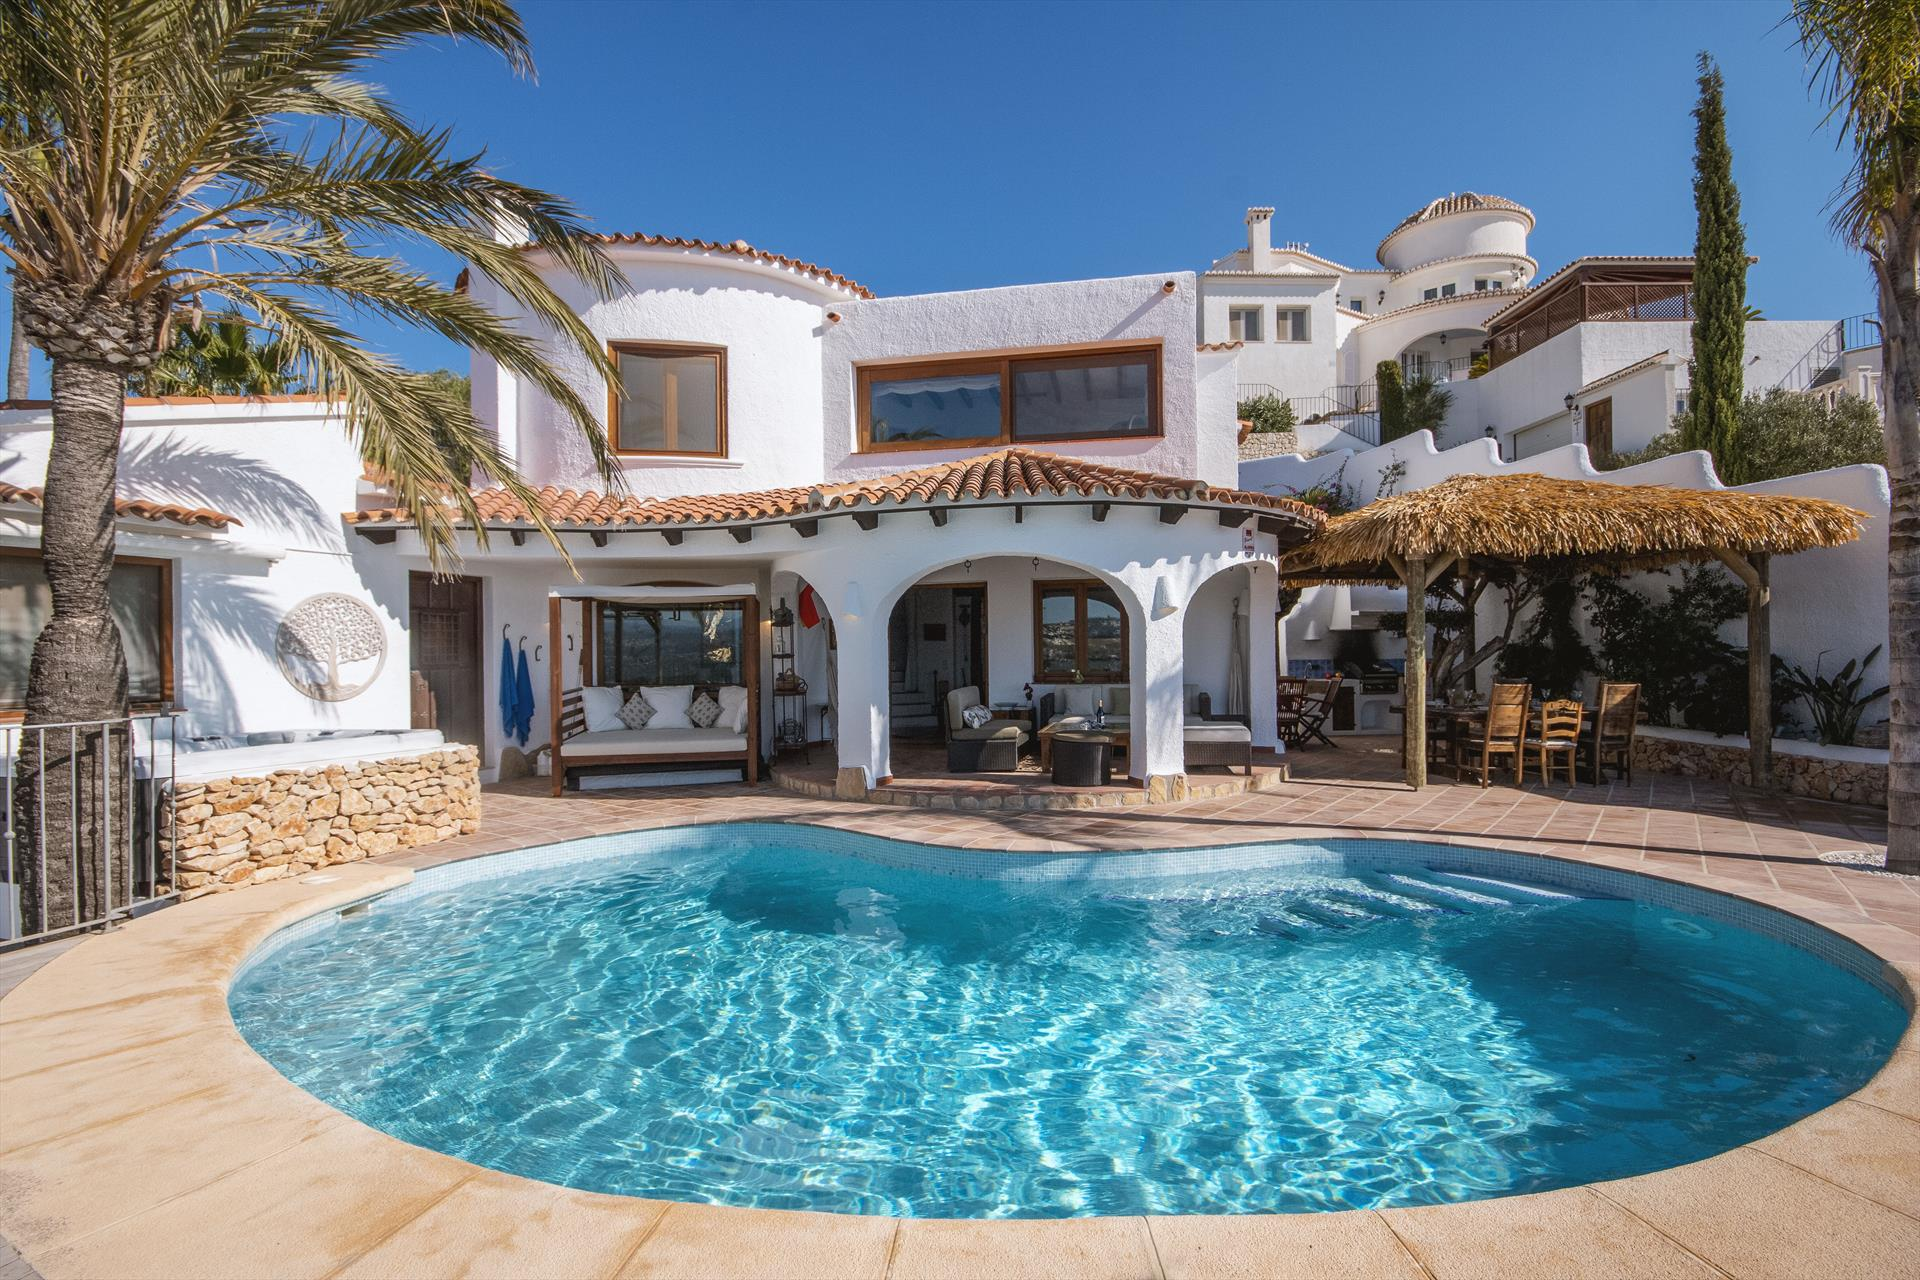 Mira al Mar 8 pax, Large and comfortable villa in Moraira, on the Costa Blanca, Spain  with private pool for 8 persons.....